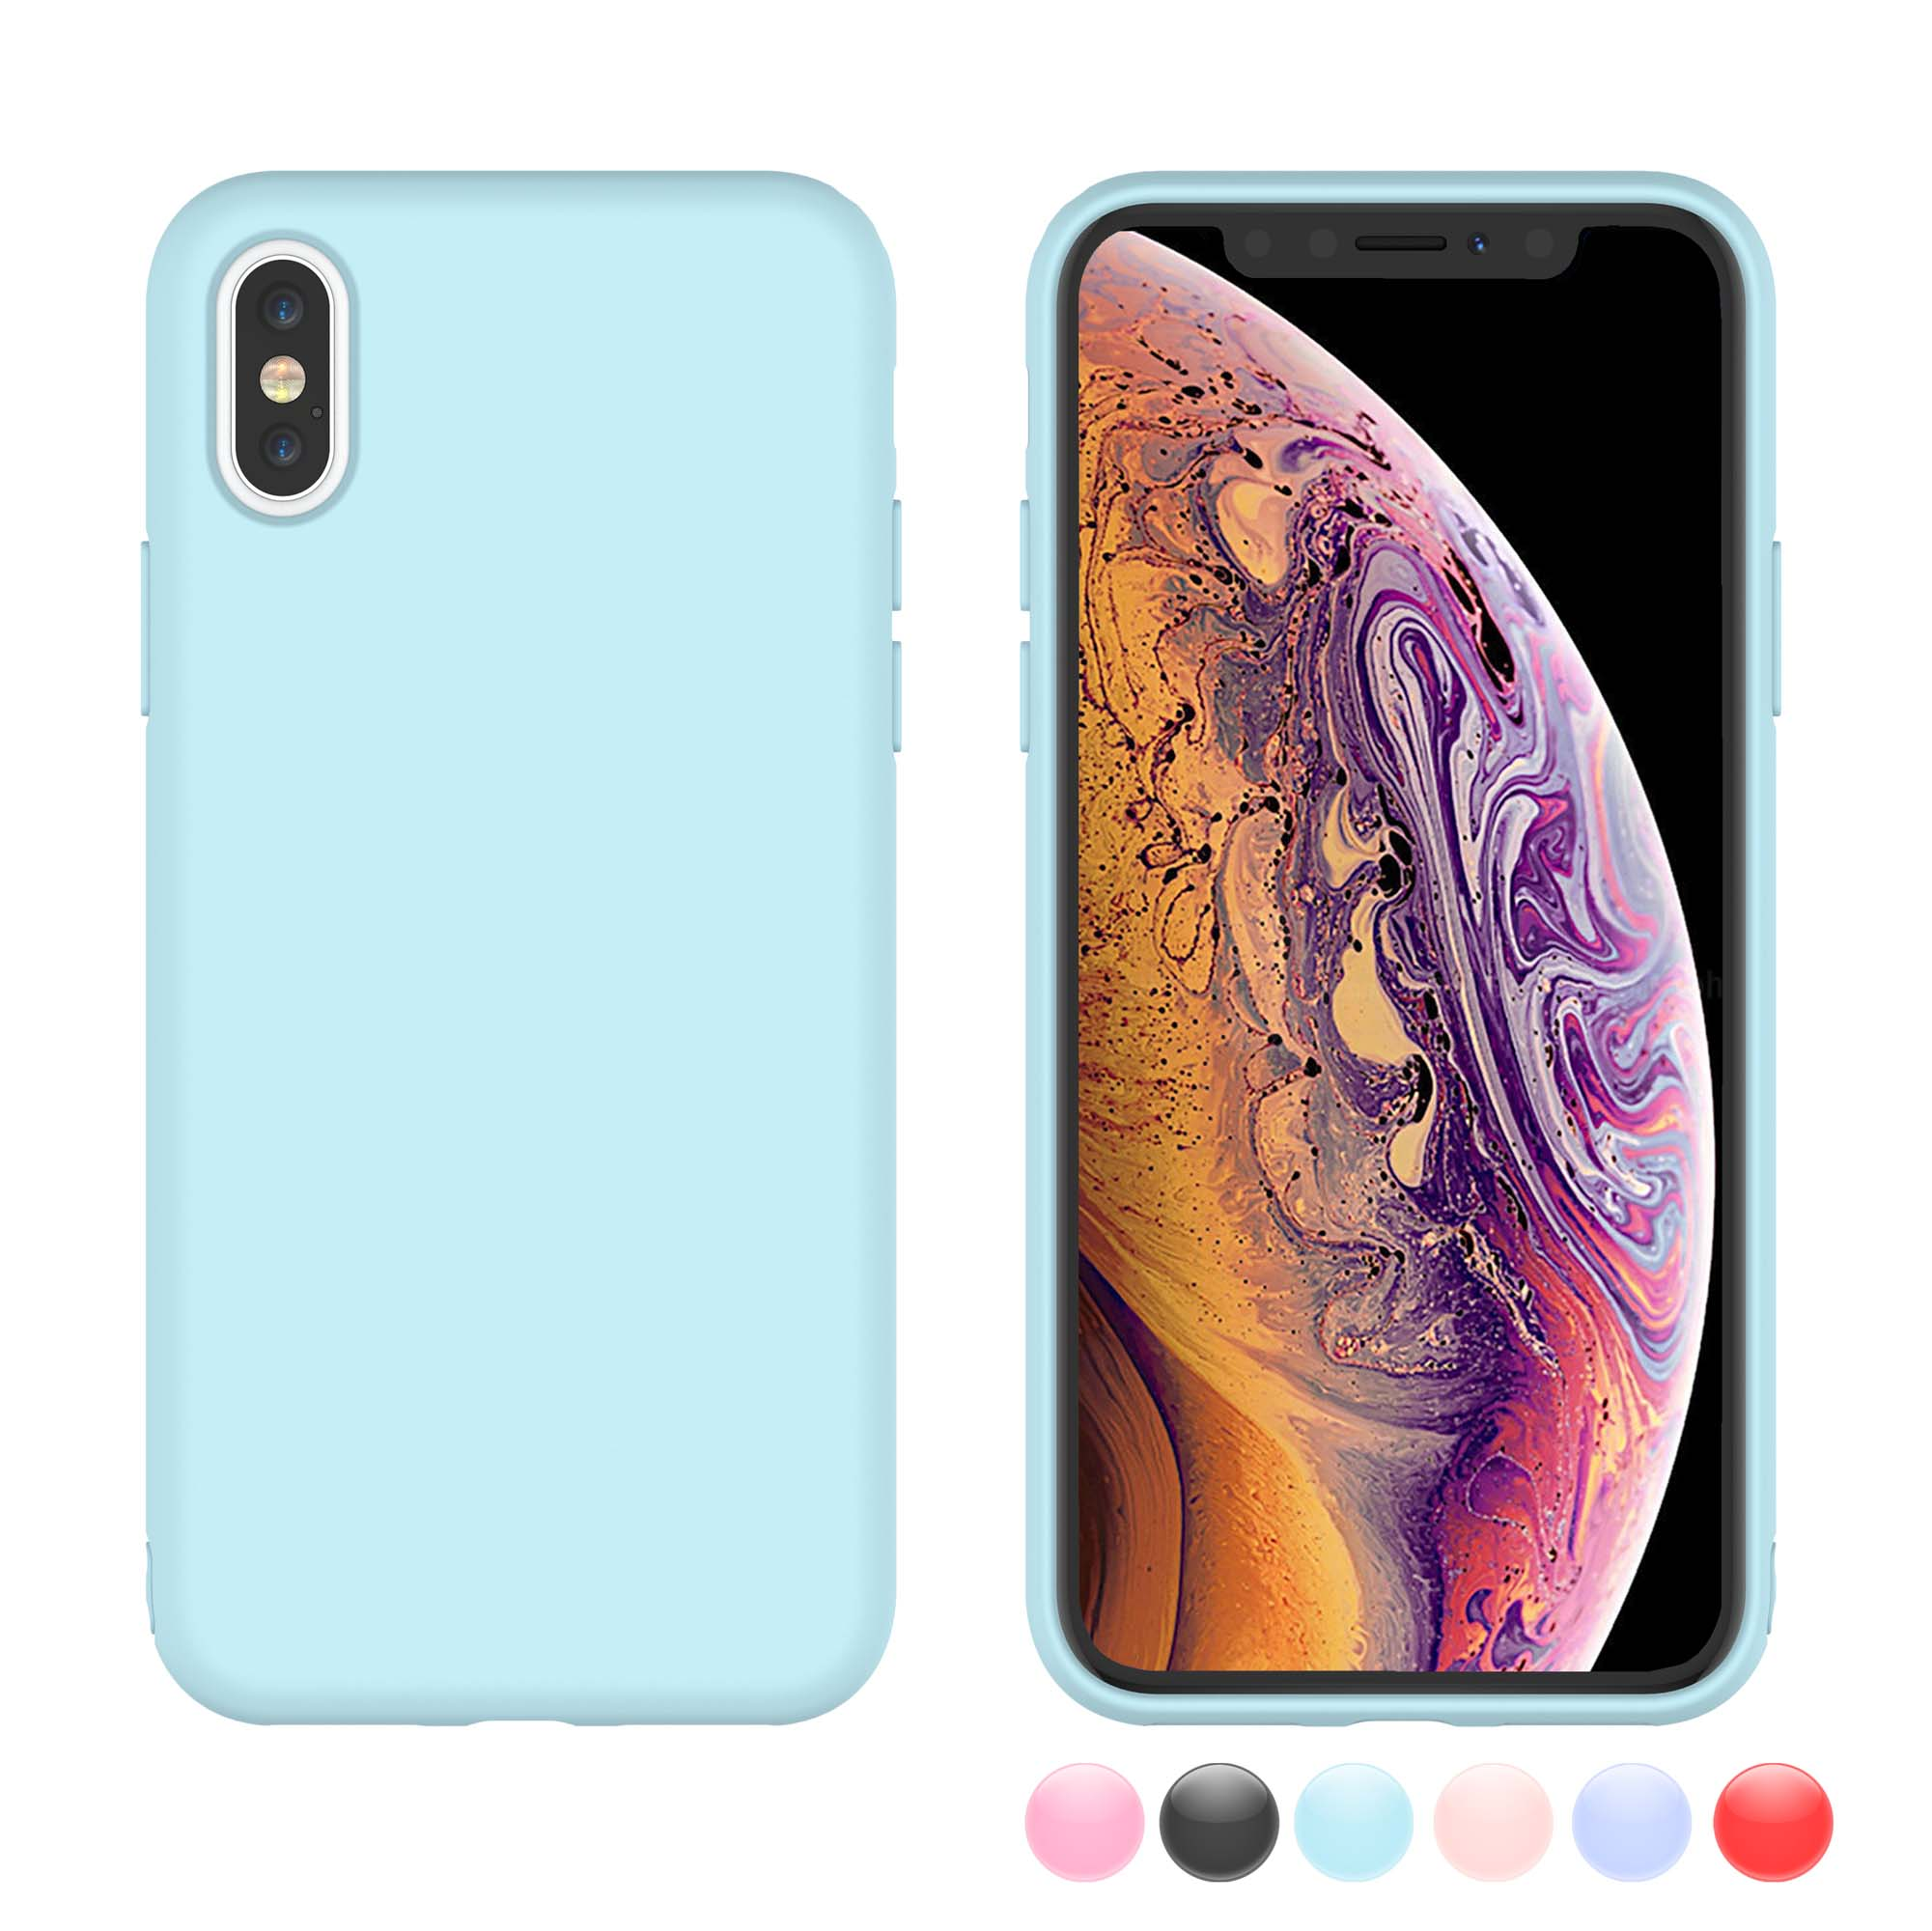 Njjex Case Cover For iPhone XS Max / iPhone XS / iPhone X / iPhone 10 / iPhone X Edition, Njjex Matte Charming Colorful Slim Soft TPU Bumper Case Cover -Red